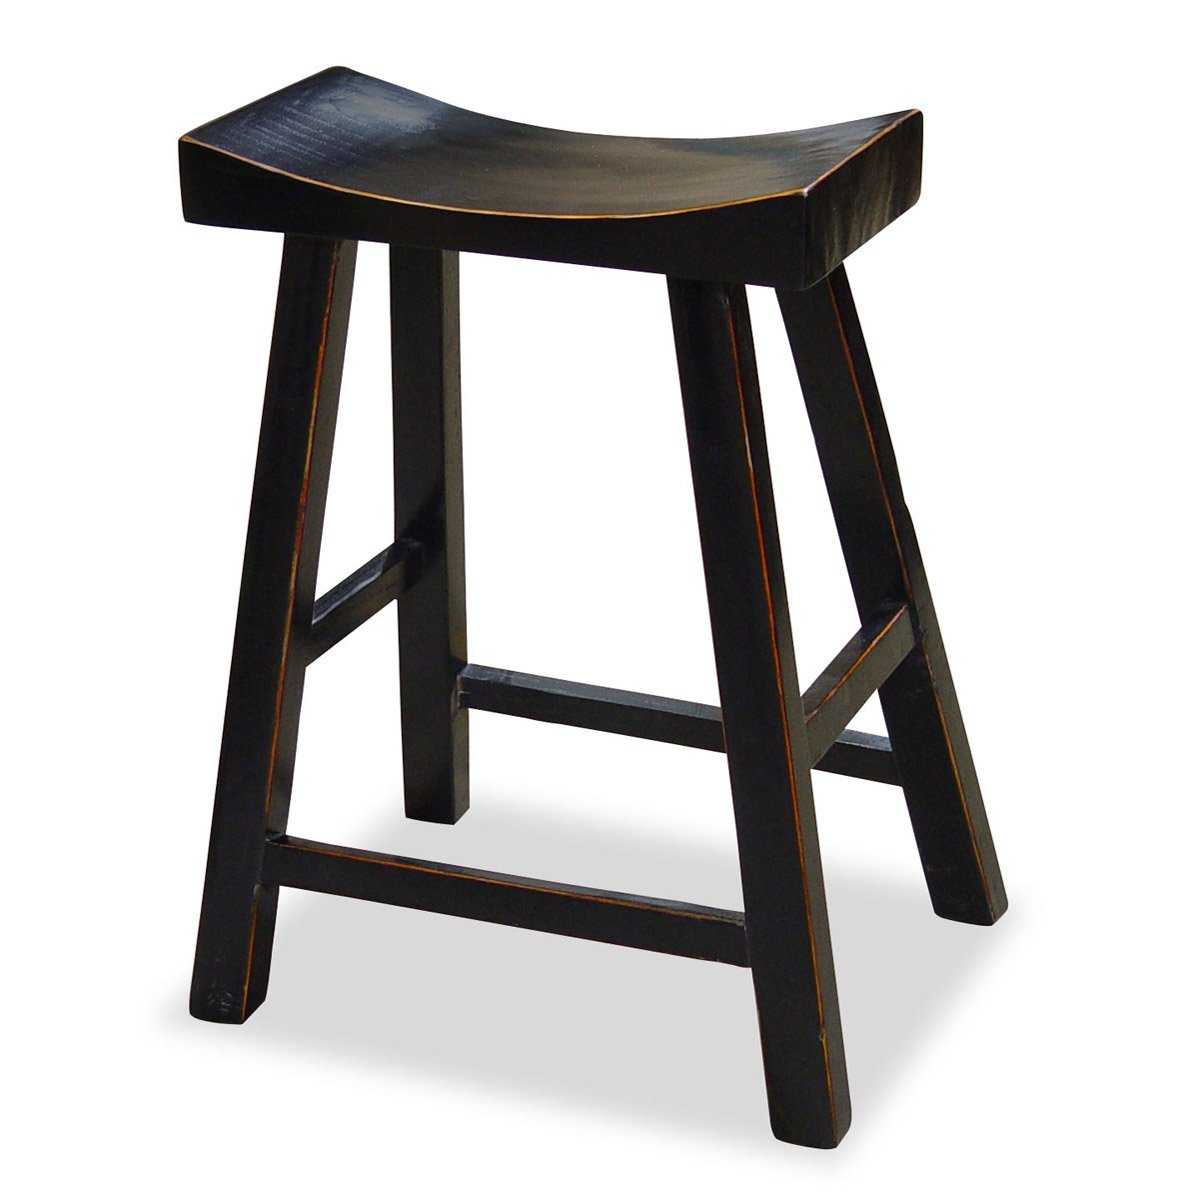 Amazon com china furniture online elmwood bar stool 25 inches high zen style distressed black finish kitchen dining